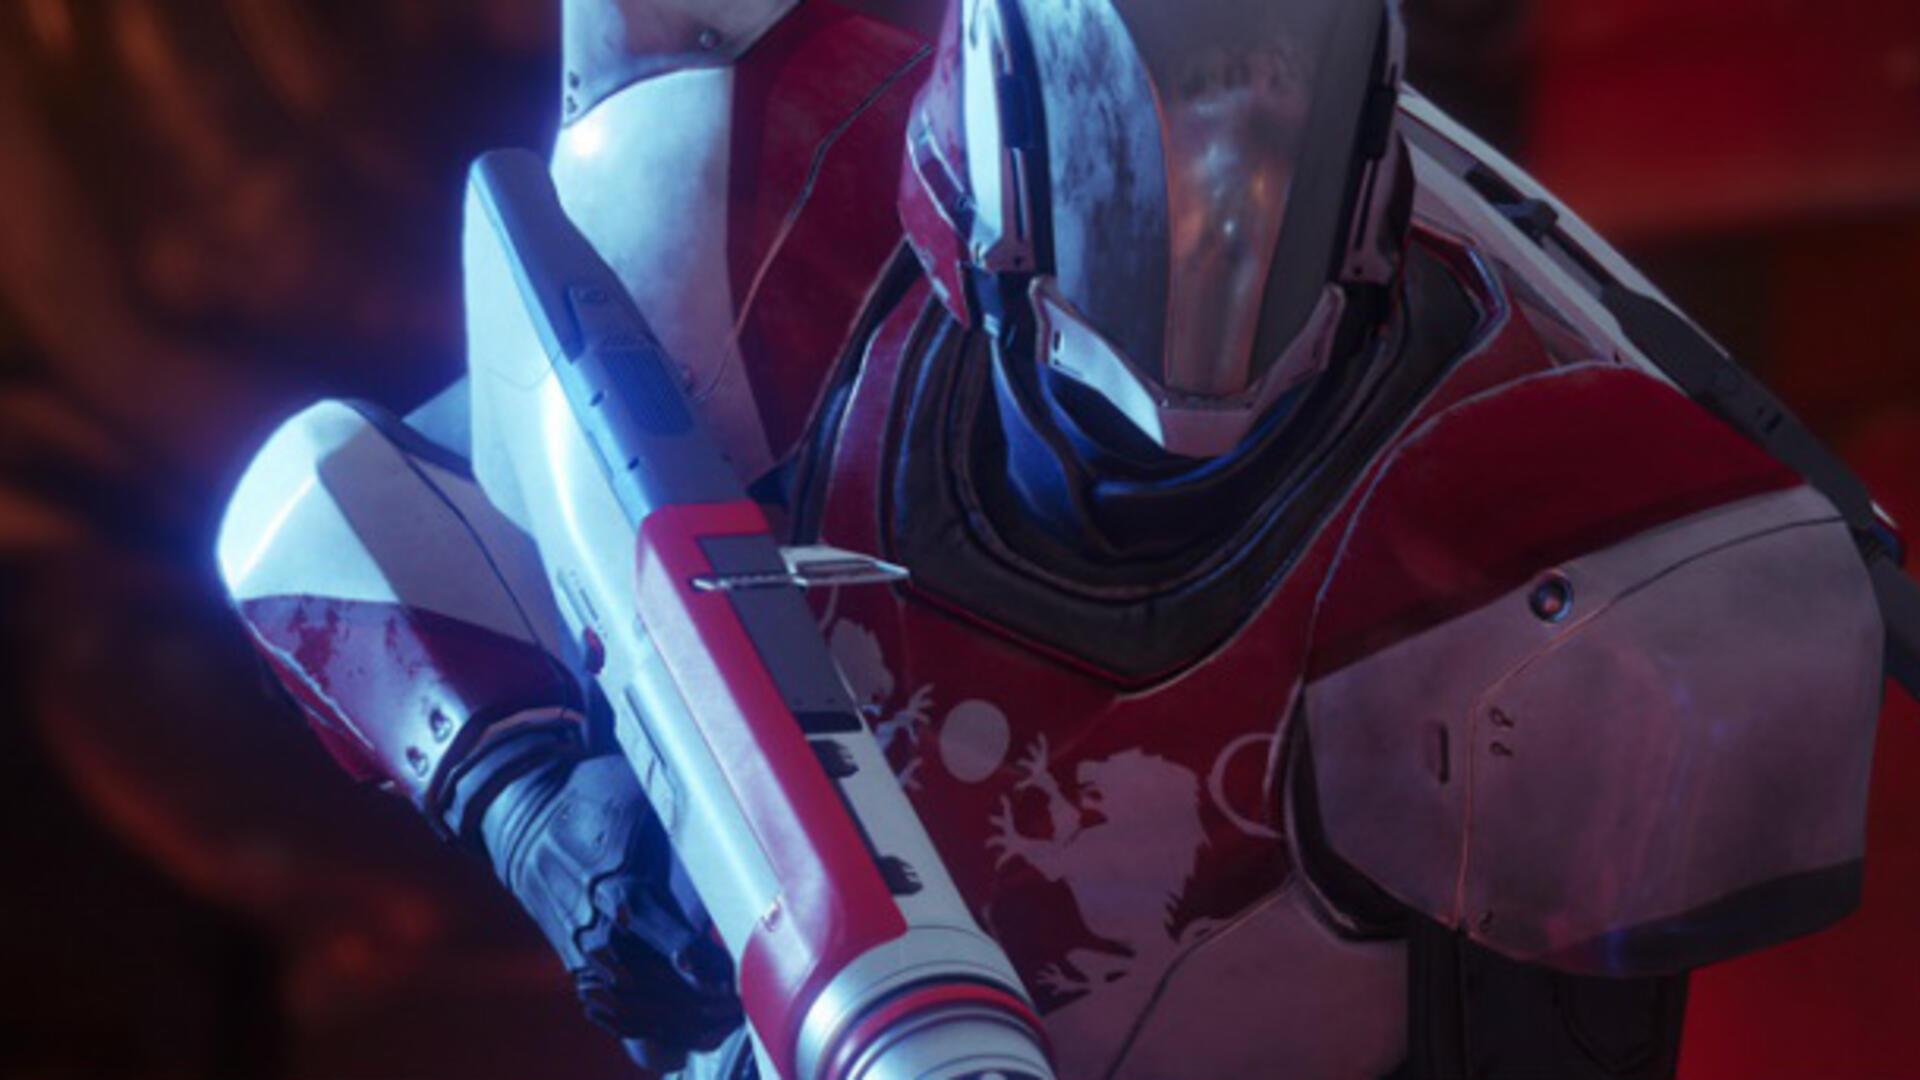 Destiny 2 PC Graphics Breakdown Reveals How Much Stronger It Is on PC Than on Consoles